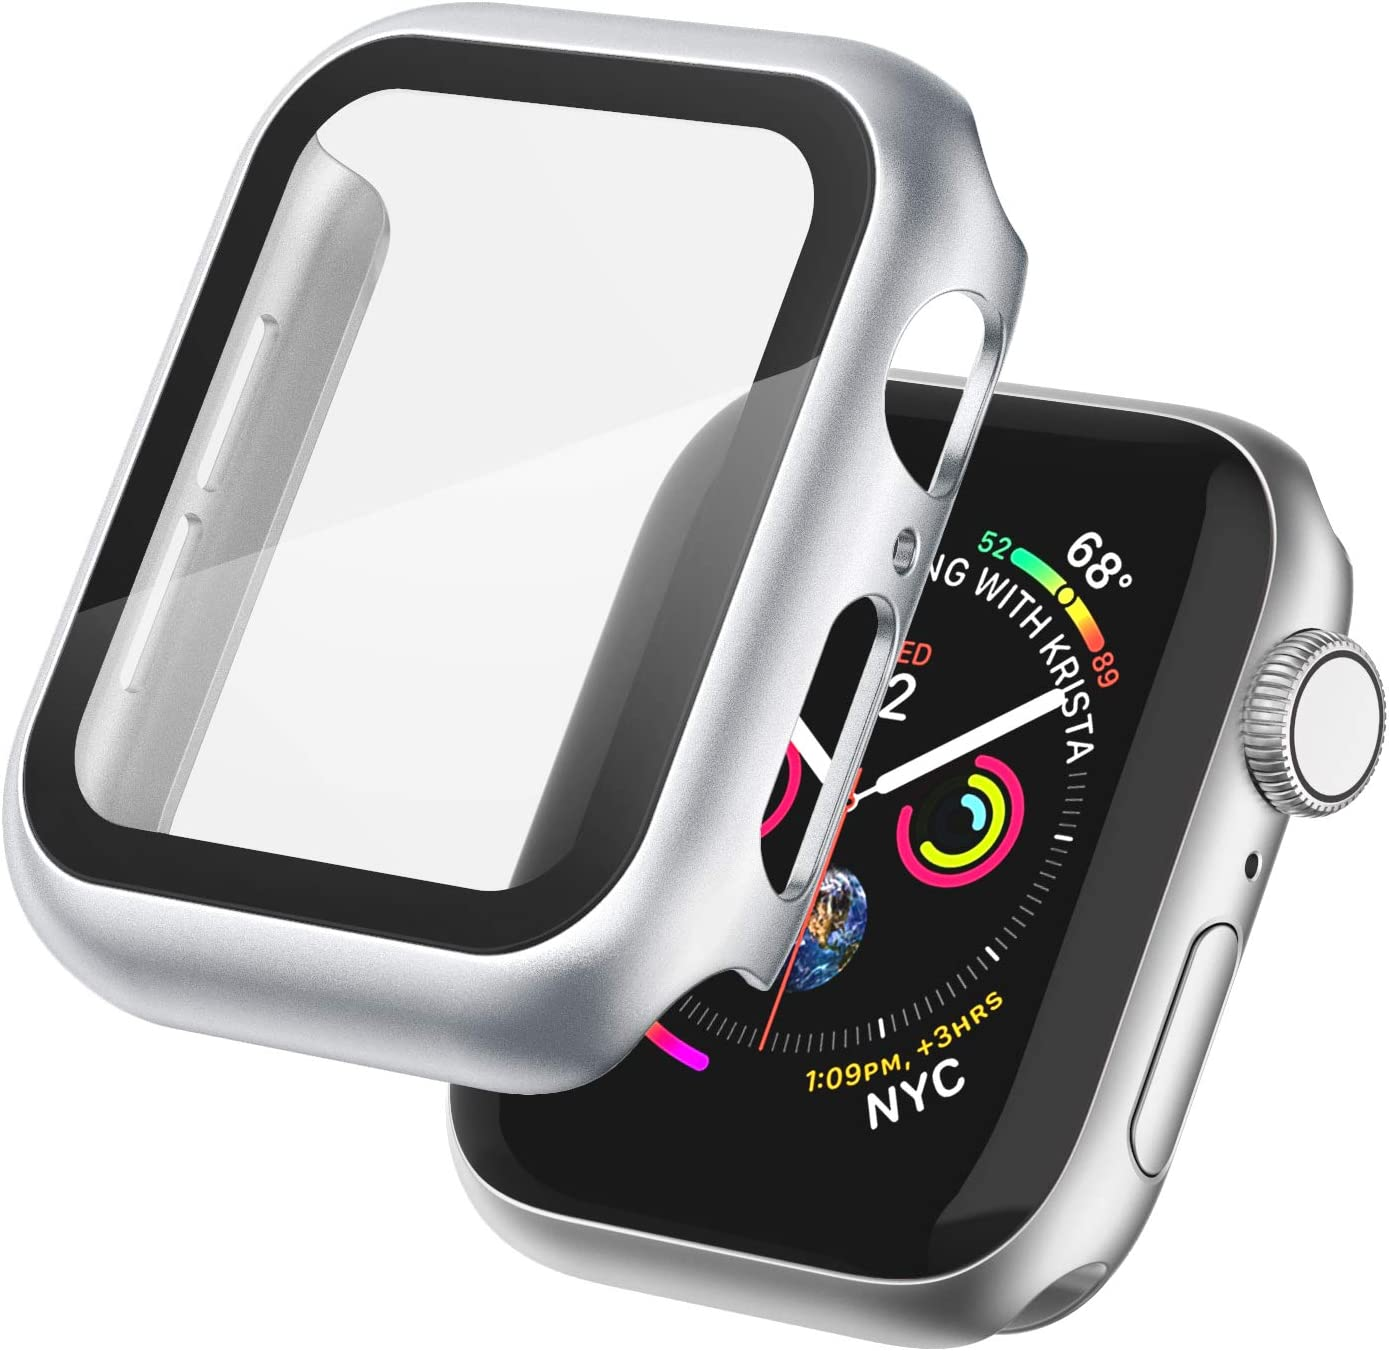 Apple Watch Case 44mm with Tempered Glass Screen Protector for Apple Watch Series 6/5/4 SE Ultra-Thin Full Around Hard Apple Watch Protective Case Cover for Women Men iWatch Series 44mm (Silver)